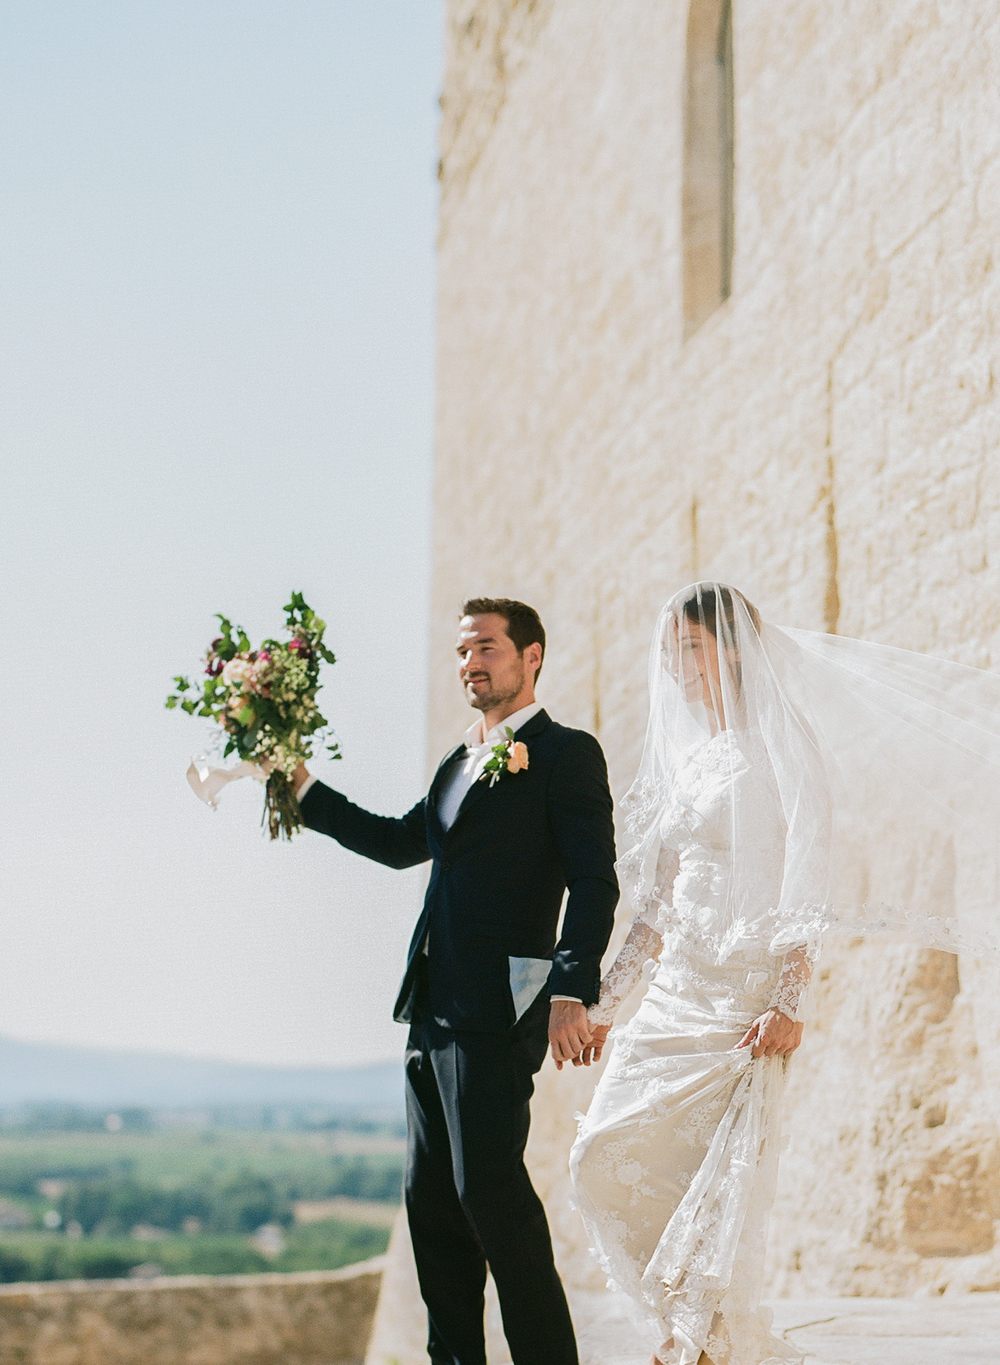 Bride and groom walk hand in hand down the church steps, just married in this quaint Provençal village; photo by Sylvie Gil